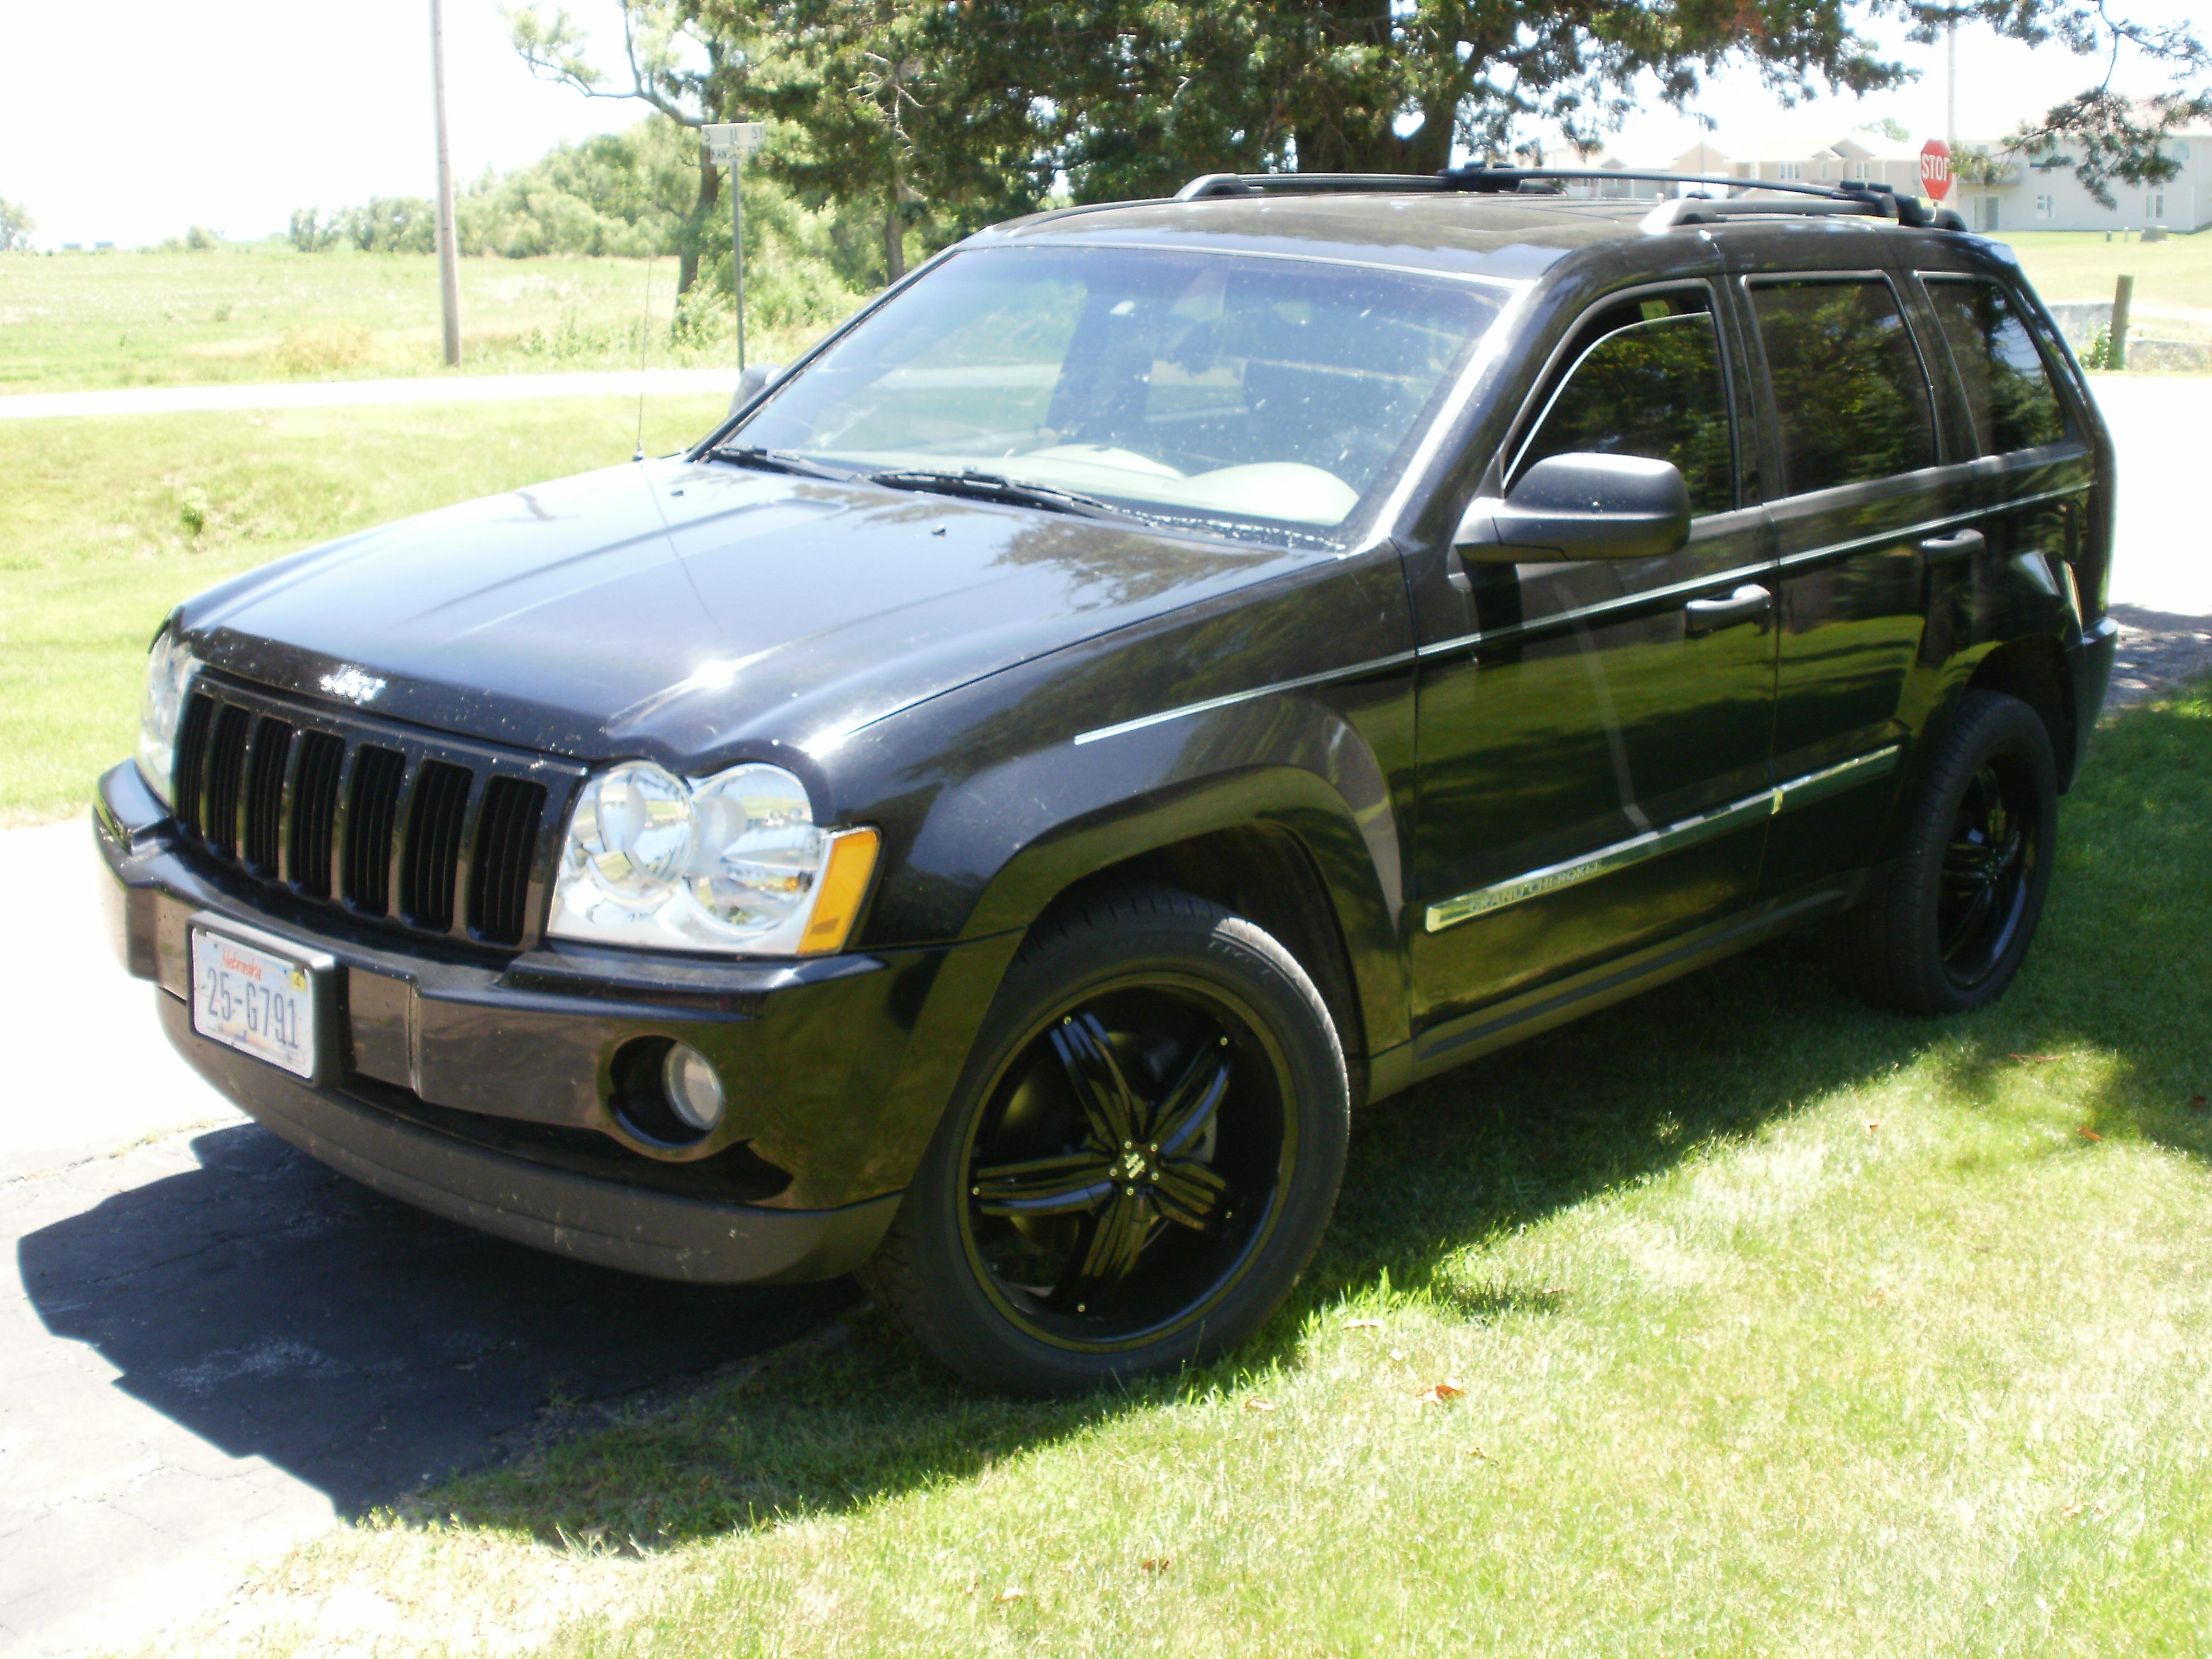 aschmid2010 2005 jeep grand cherokee specs, photos, modification